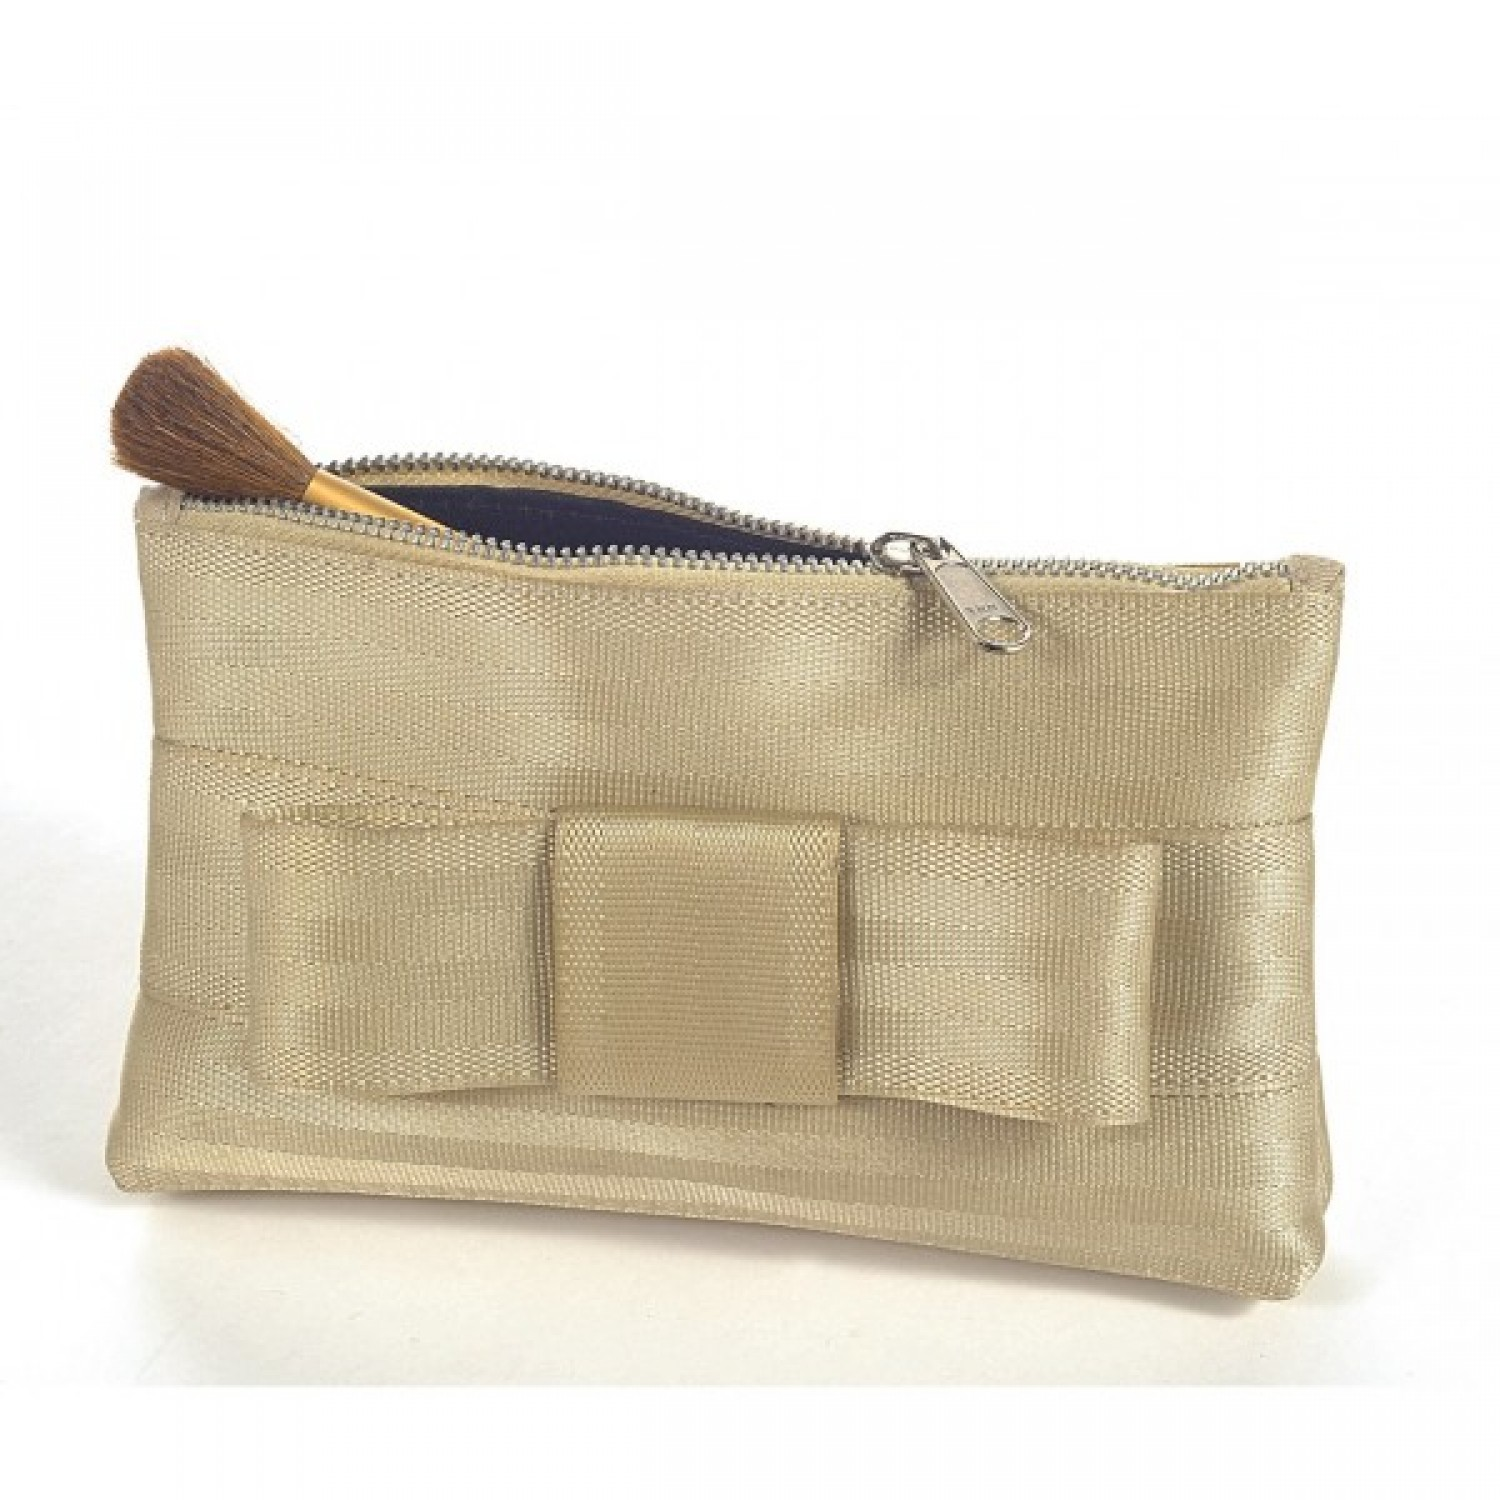 Little make-up bag / clutch in golden recycled seatbelt